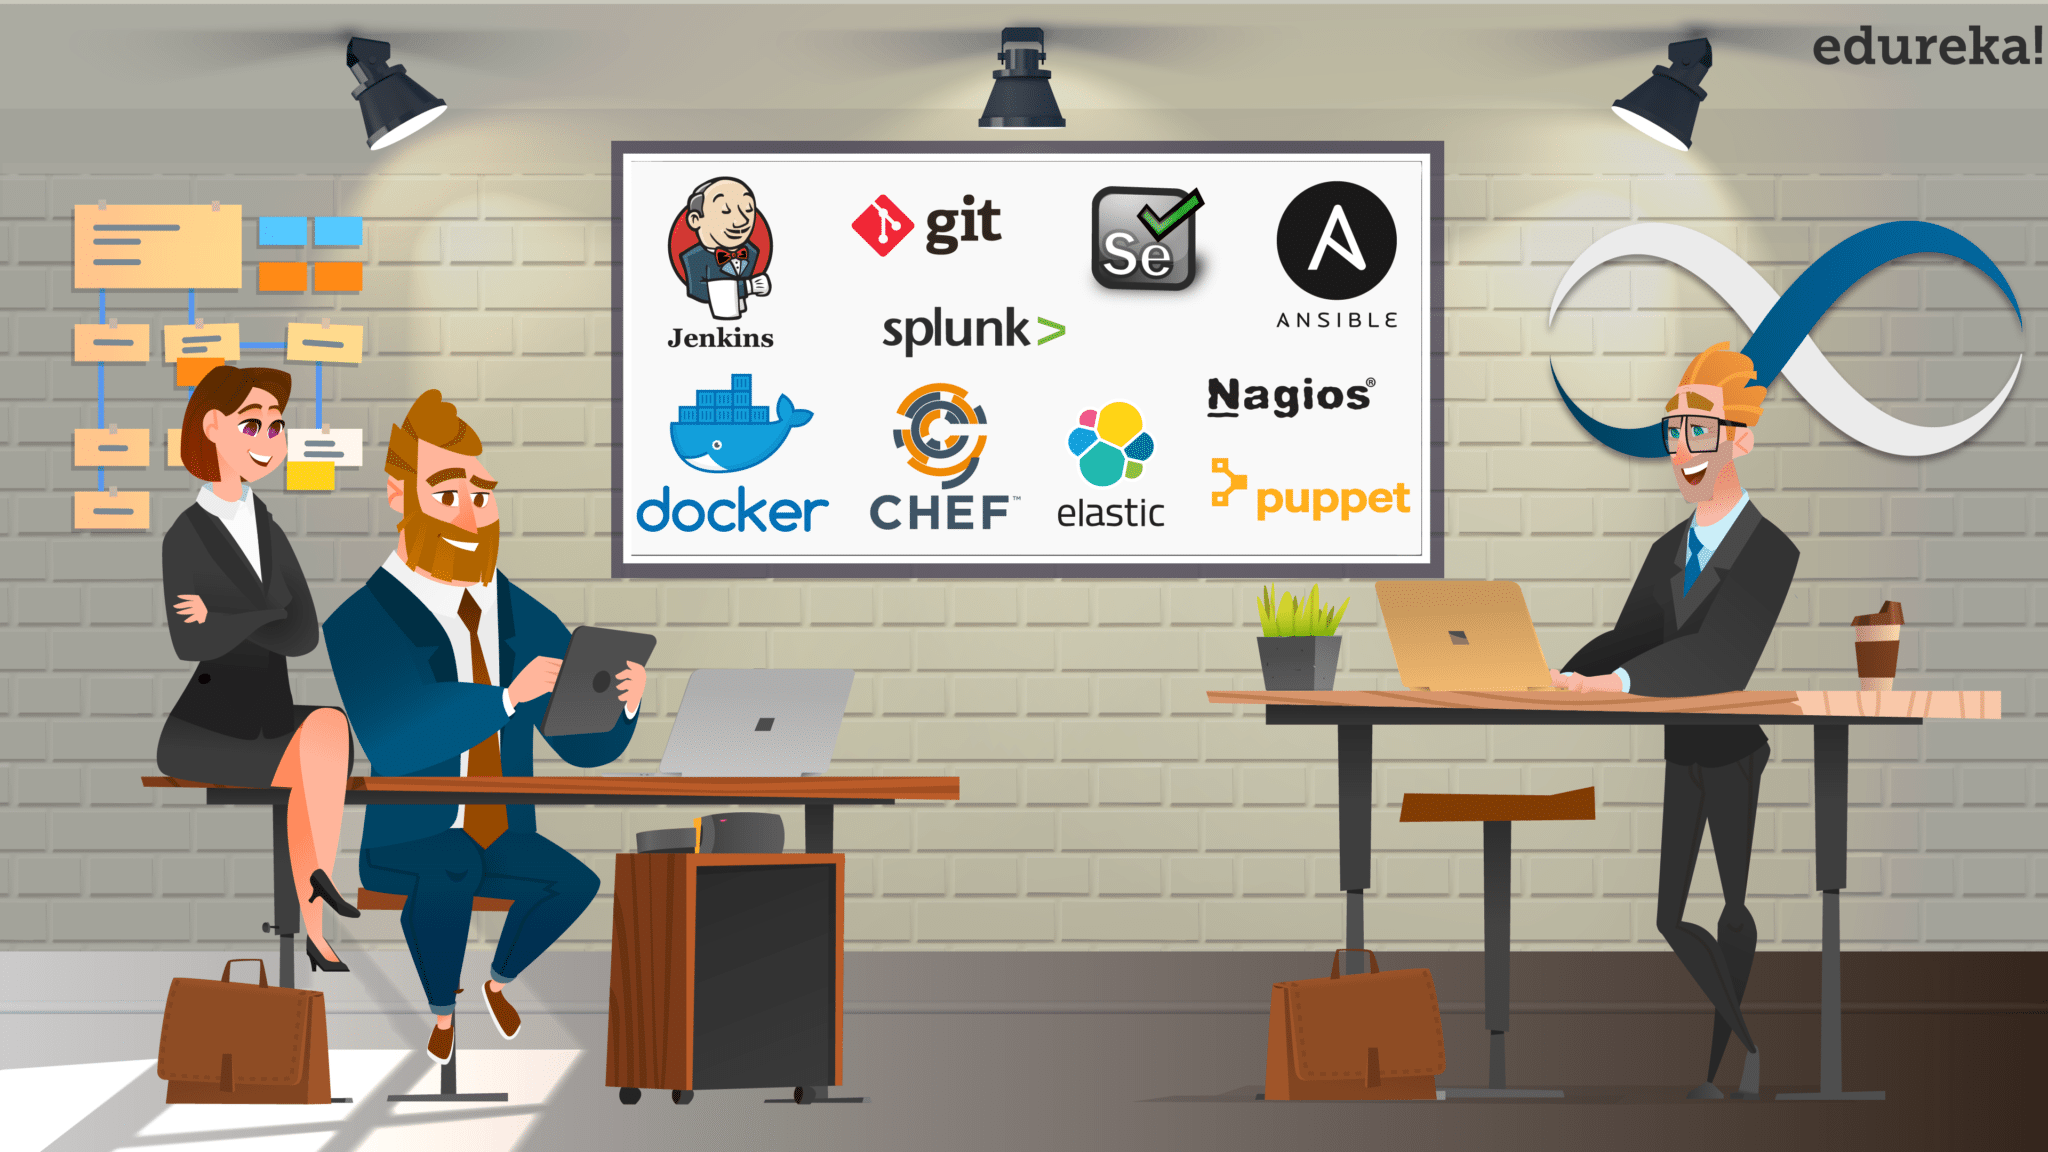 Devops Team - Top 10 DevOps Tools - Edureka